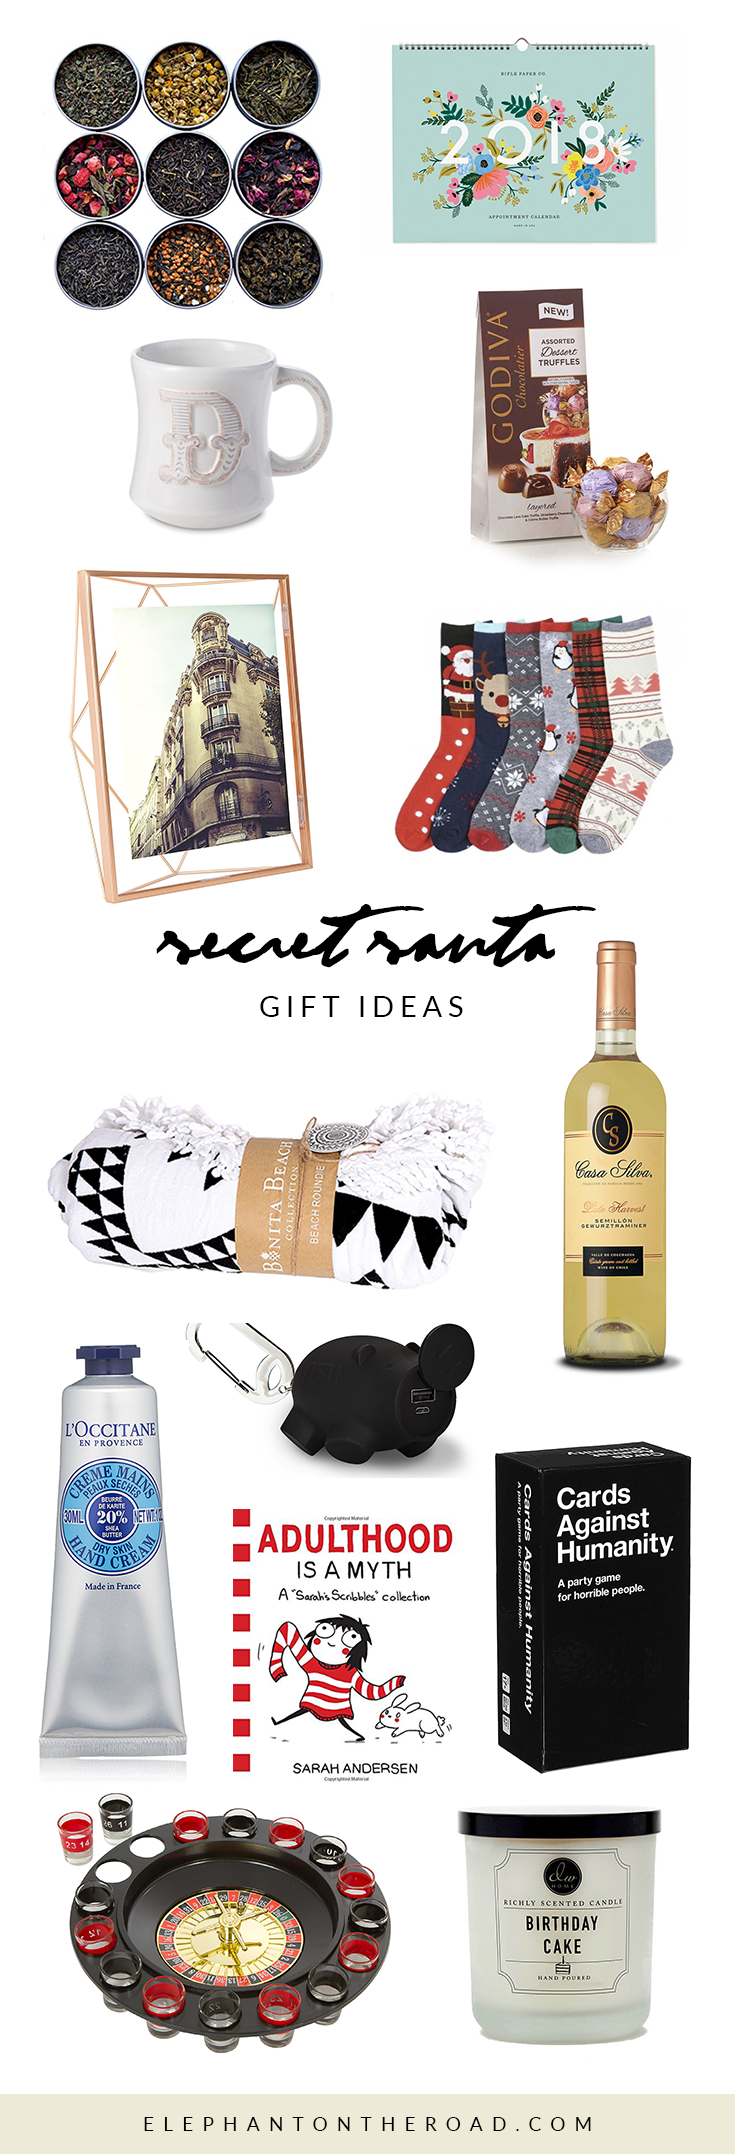 Secret Santa Gift Ideas For People You Don't Know Well – Elephant On The Road